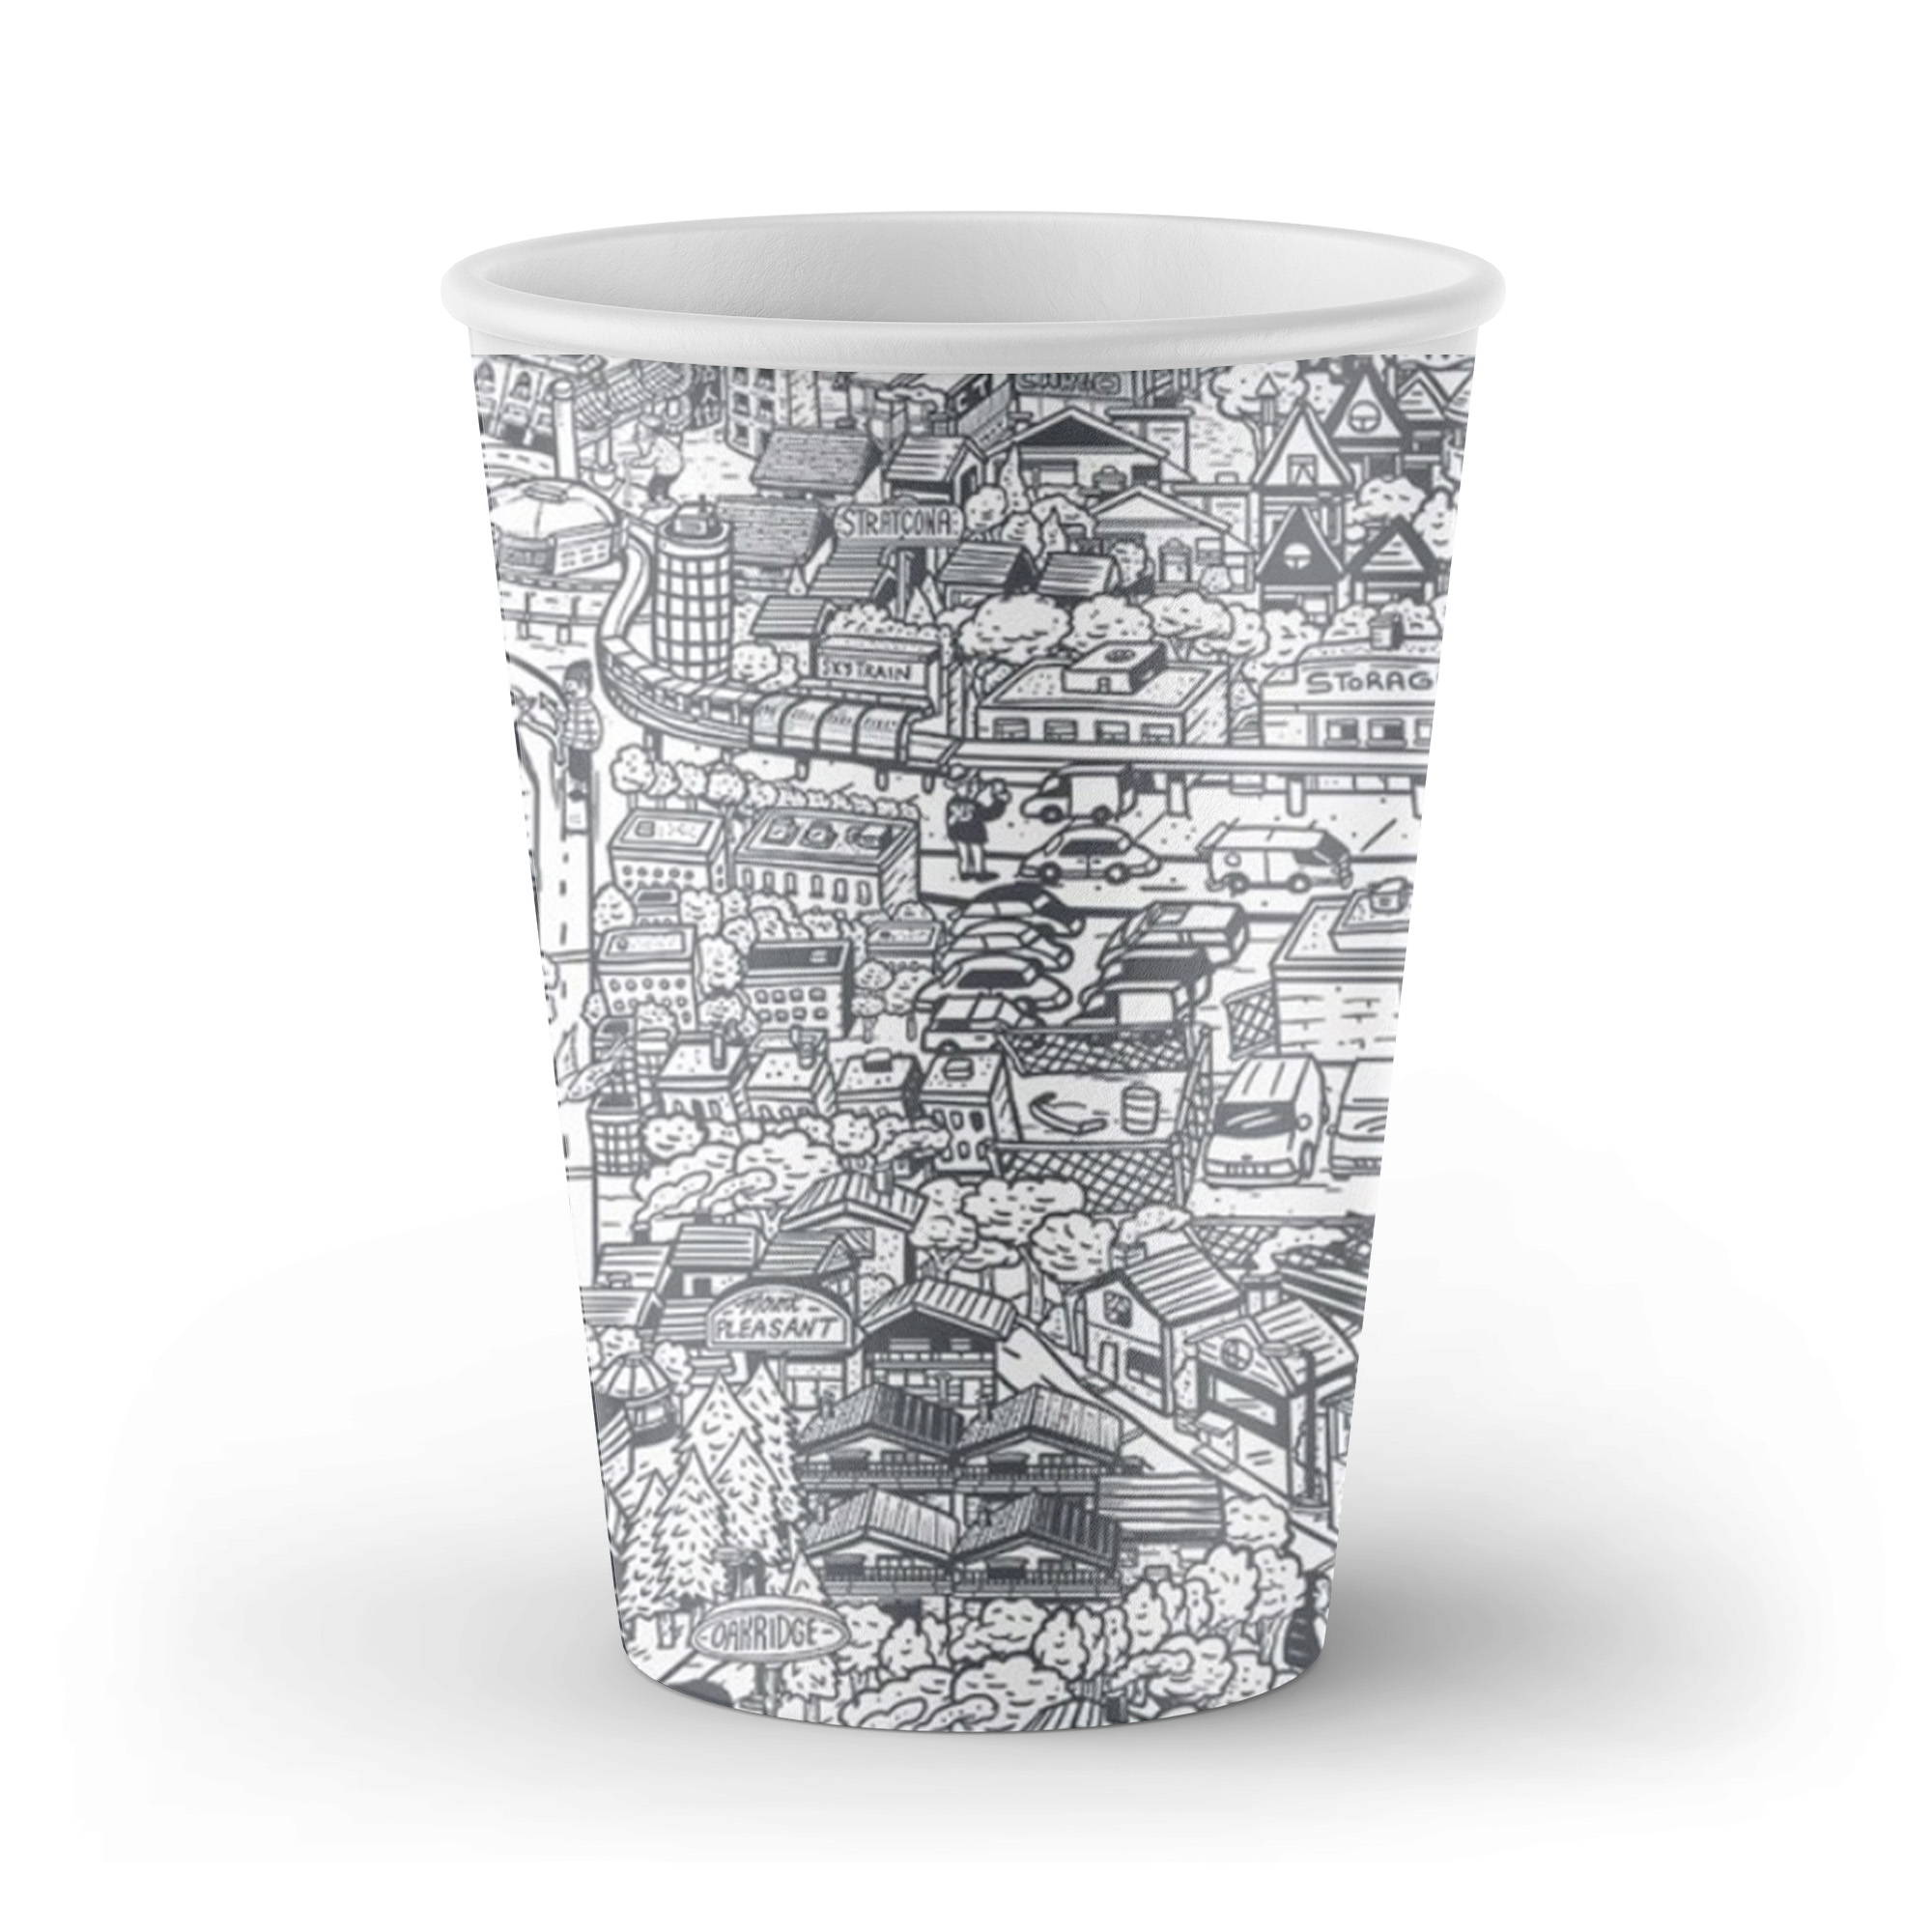 biodegradable cups, custom cups with black and white design